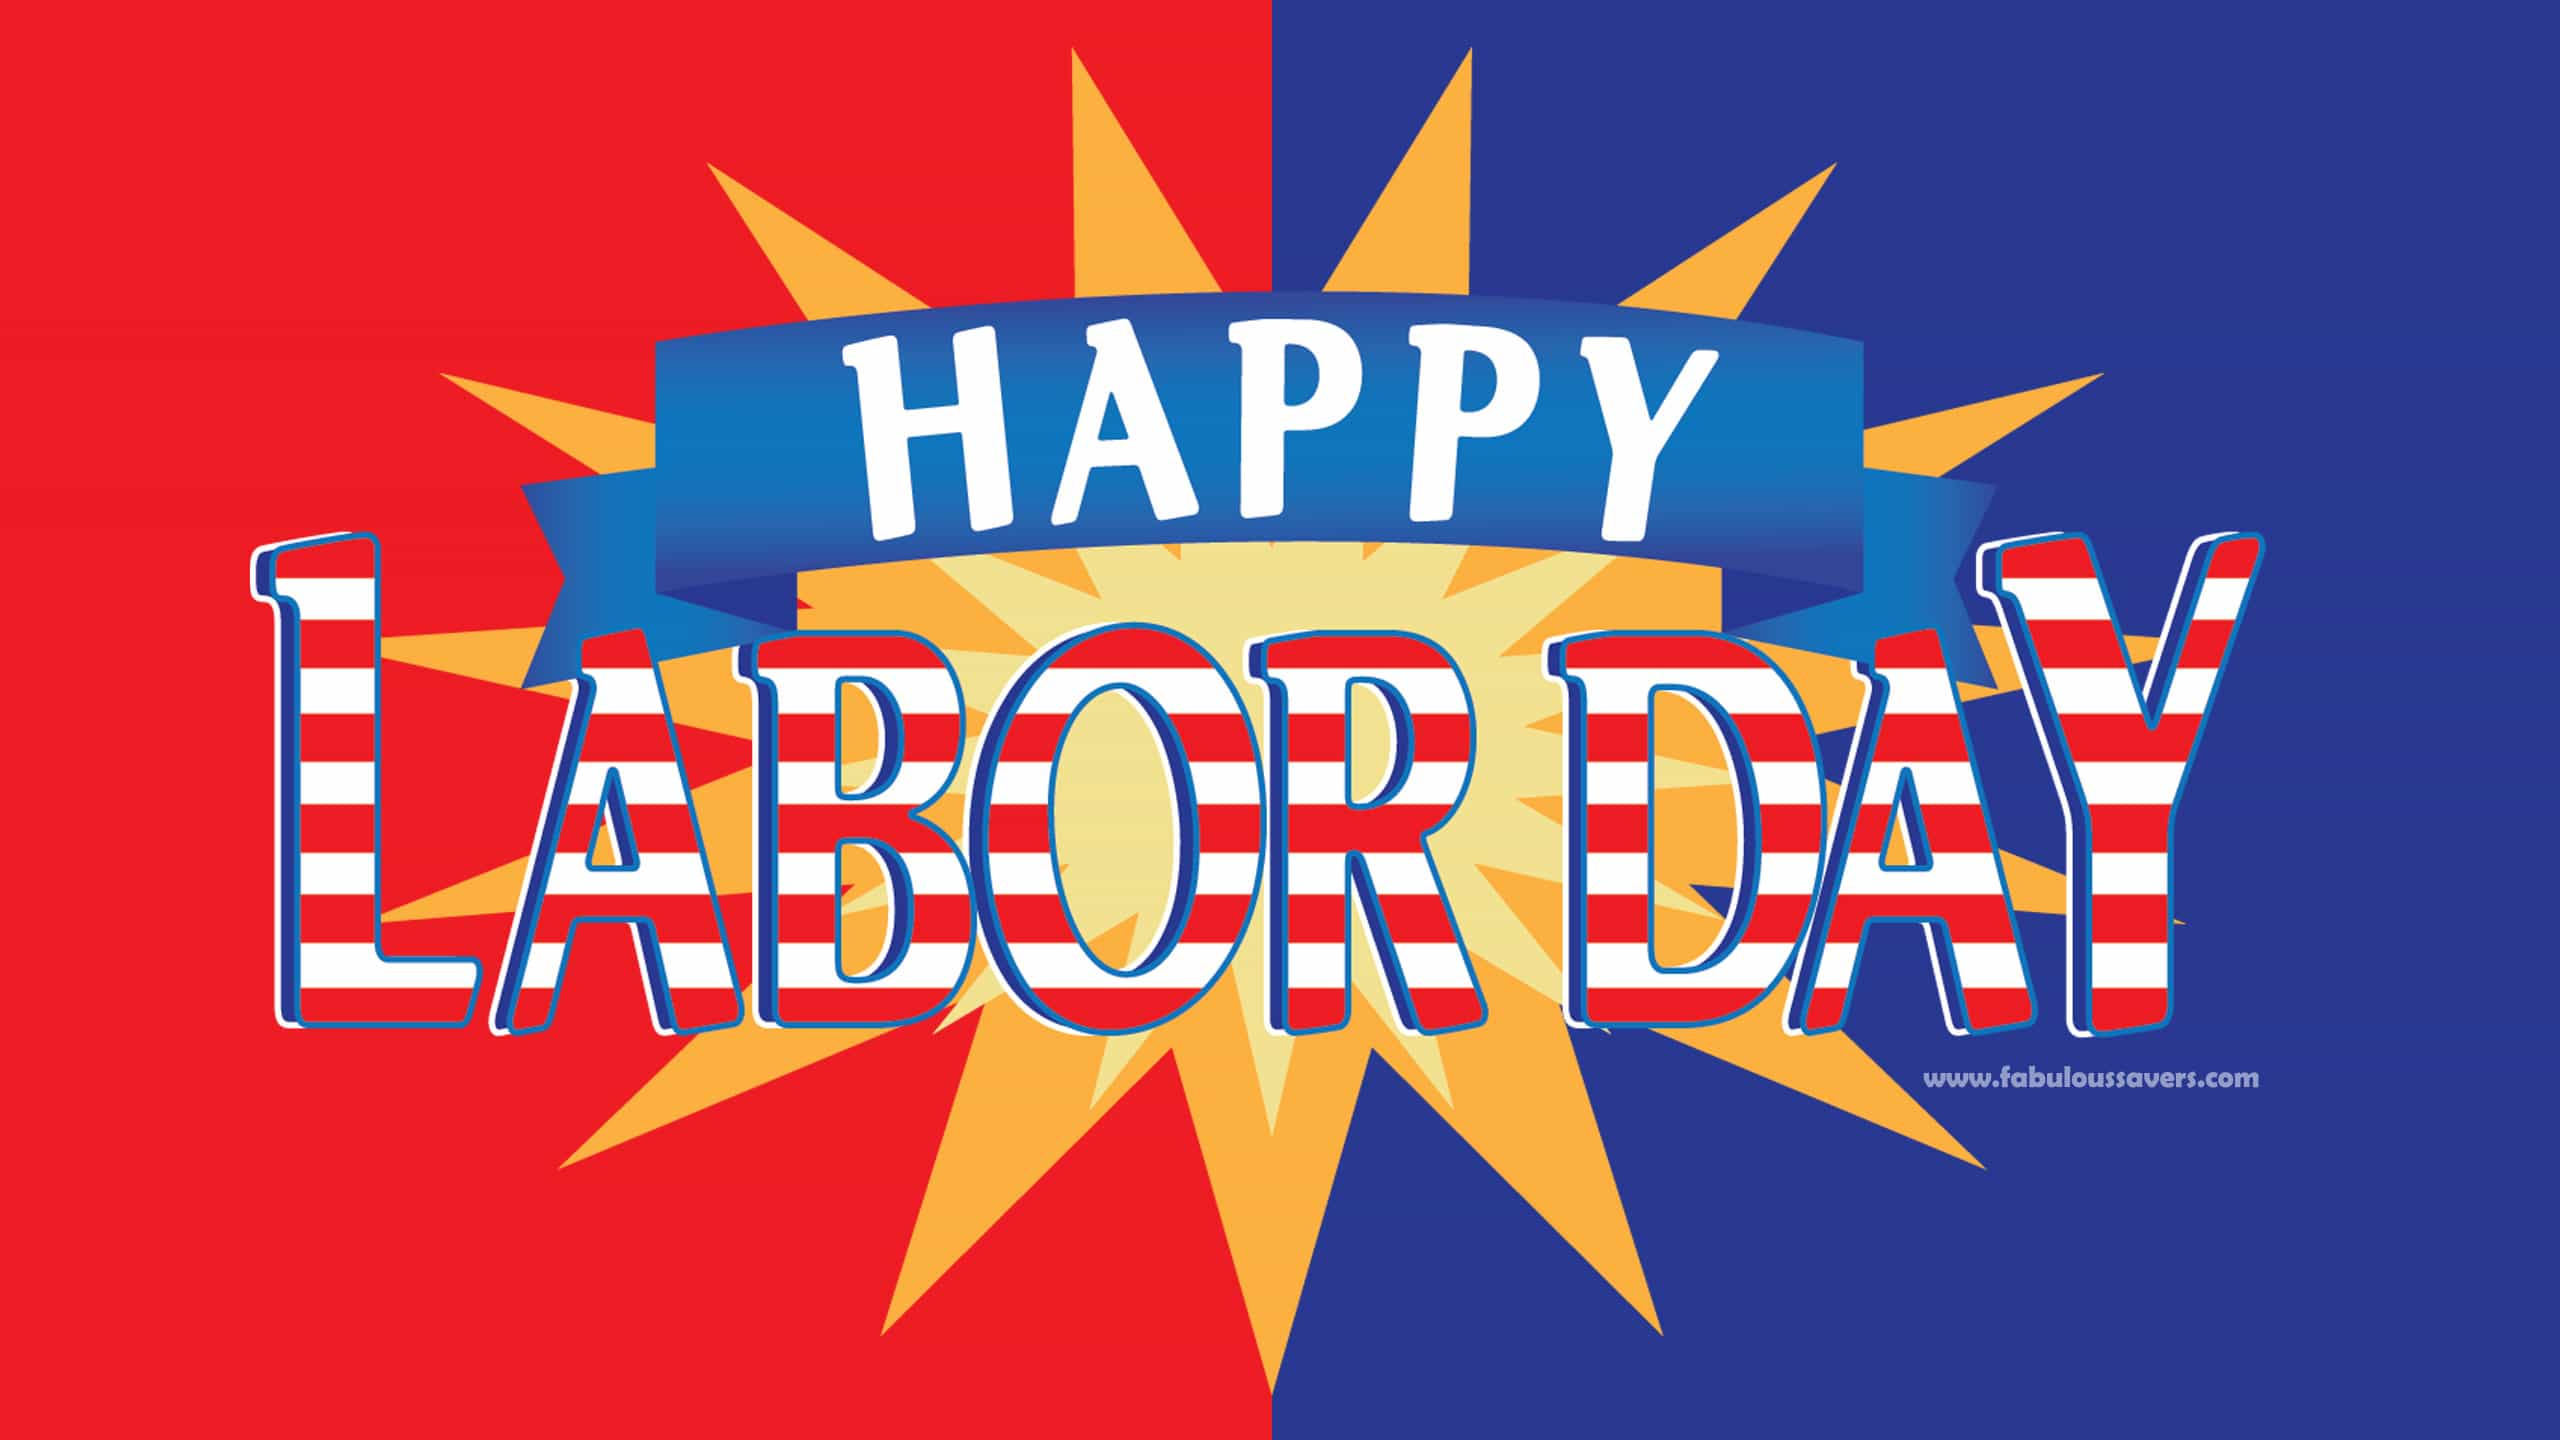 1024x768 Labor Day Wallpapers - Desktop illustration of Labor Day